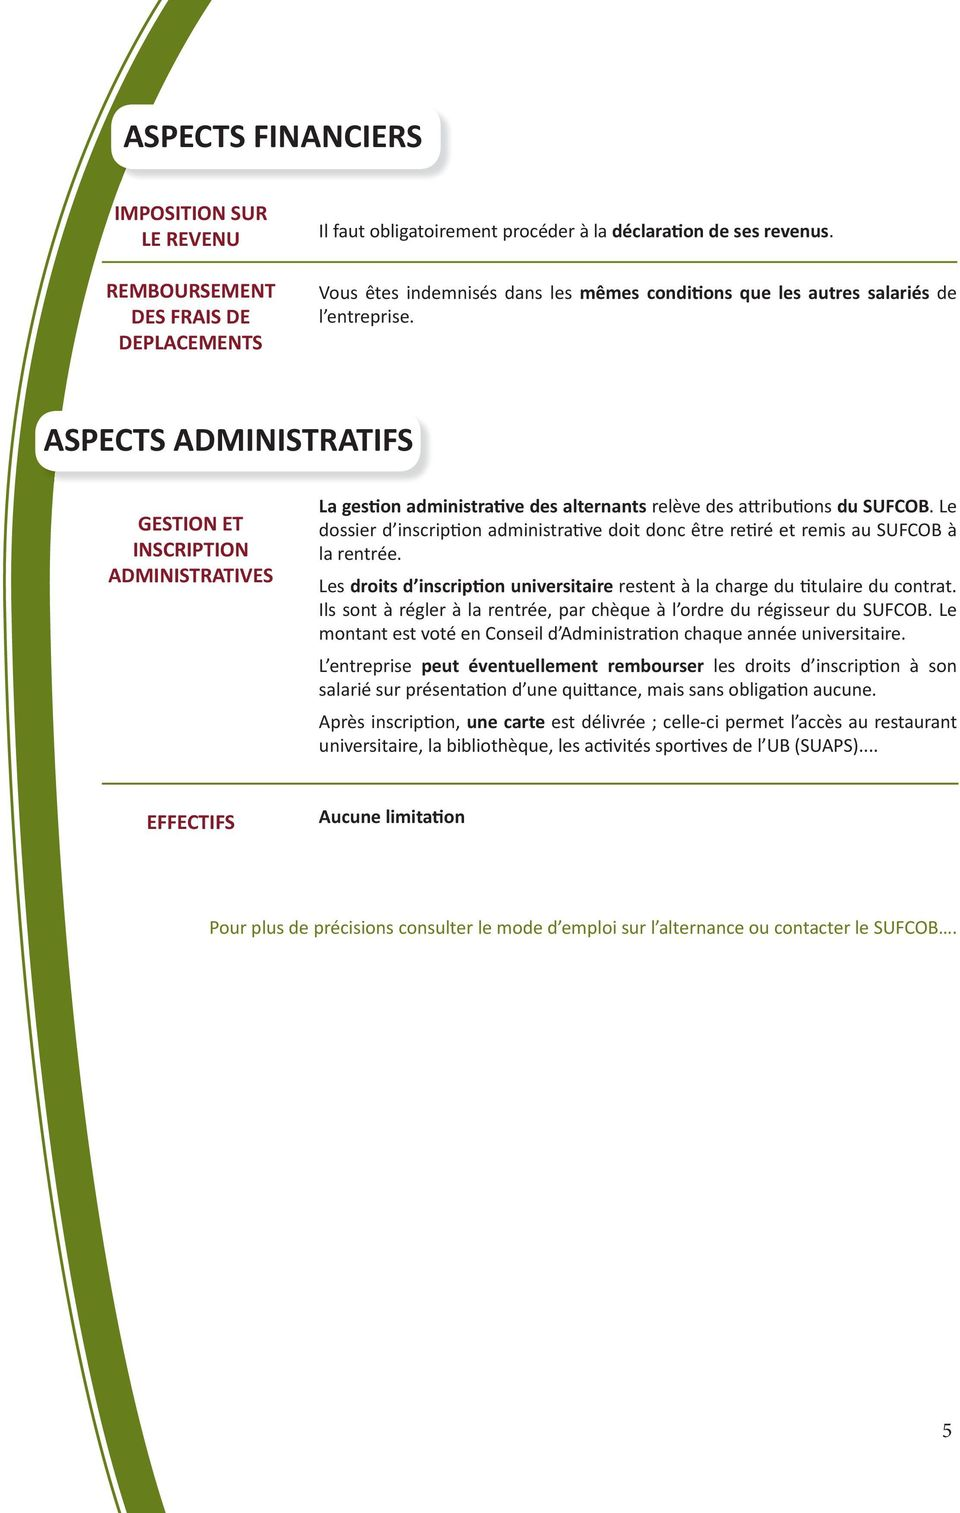 ASPECTS ADMINISTRATIFS GESTION ET INSCRIPTION ADMINISTRATIVES La gestion administrative des alternants relève des attributions du SUFCOB.